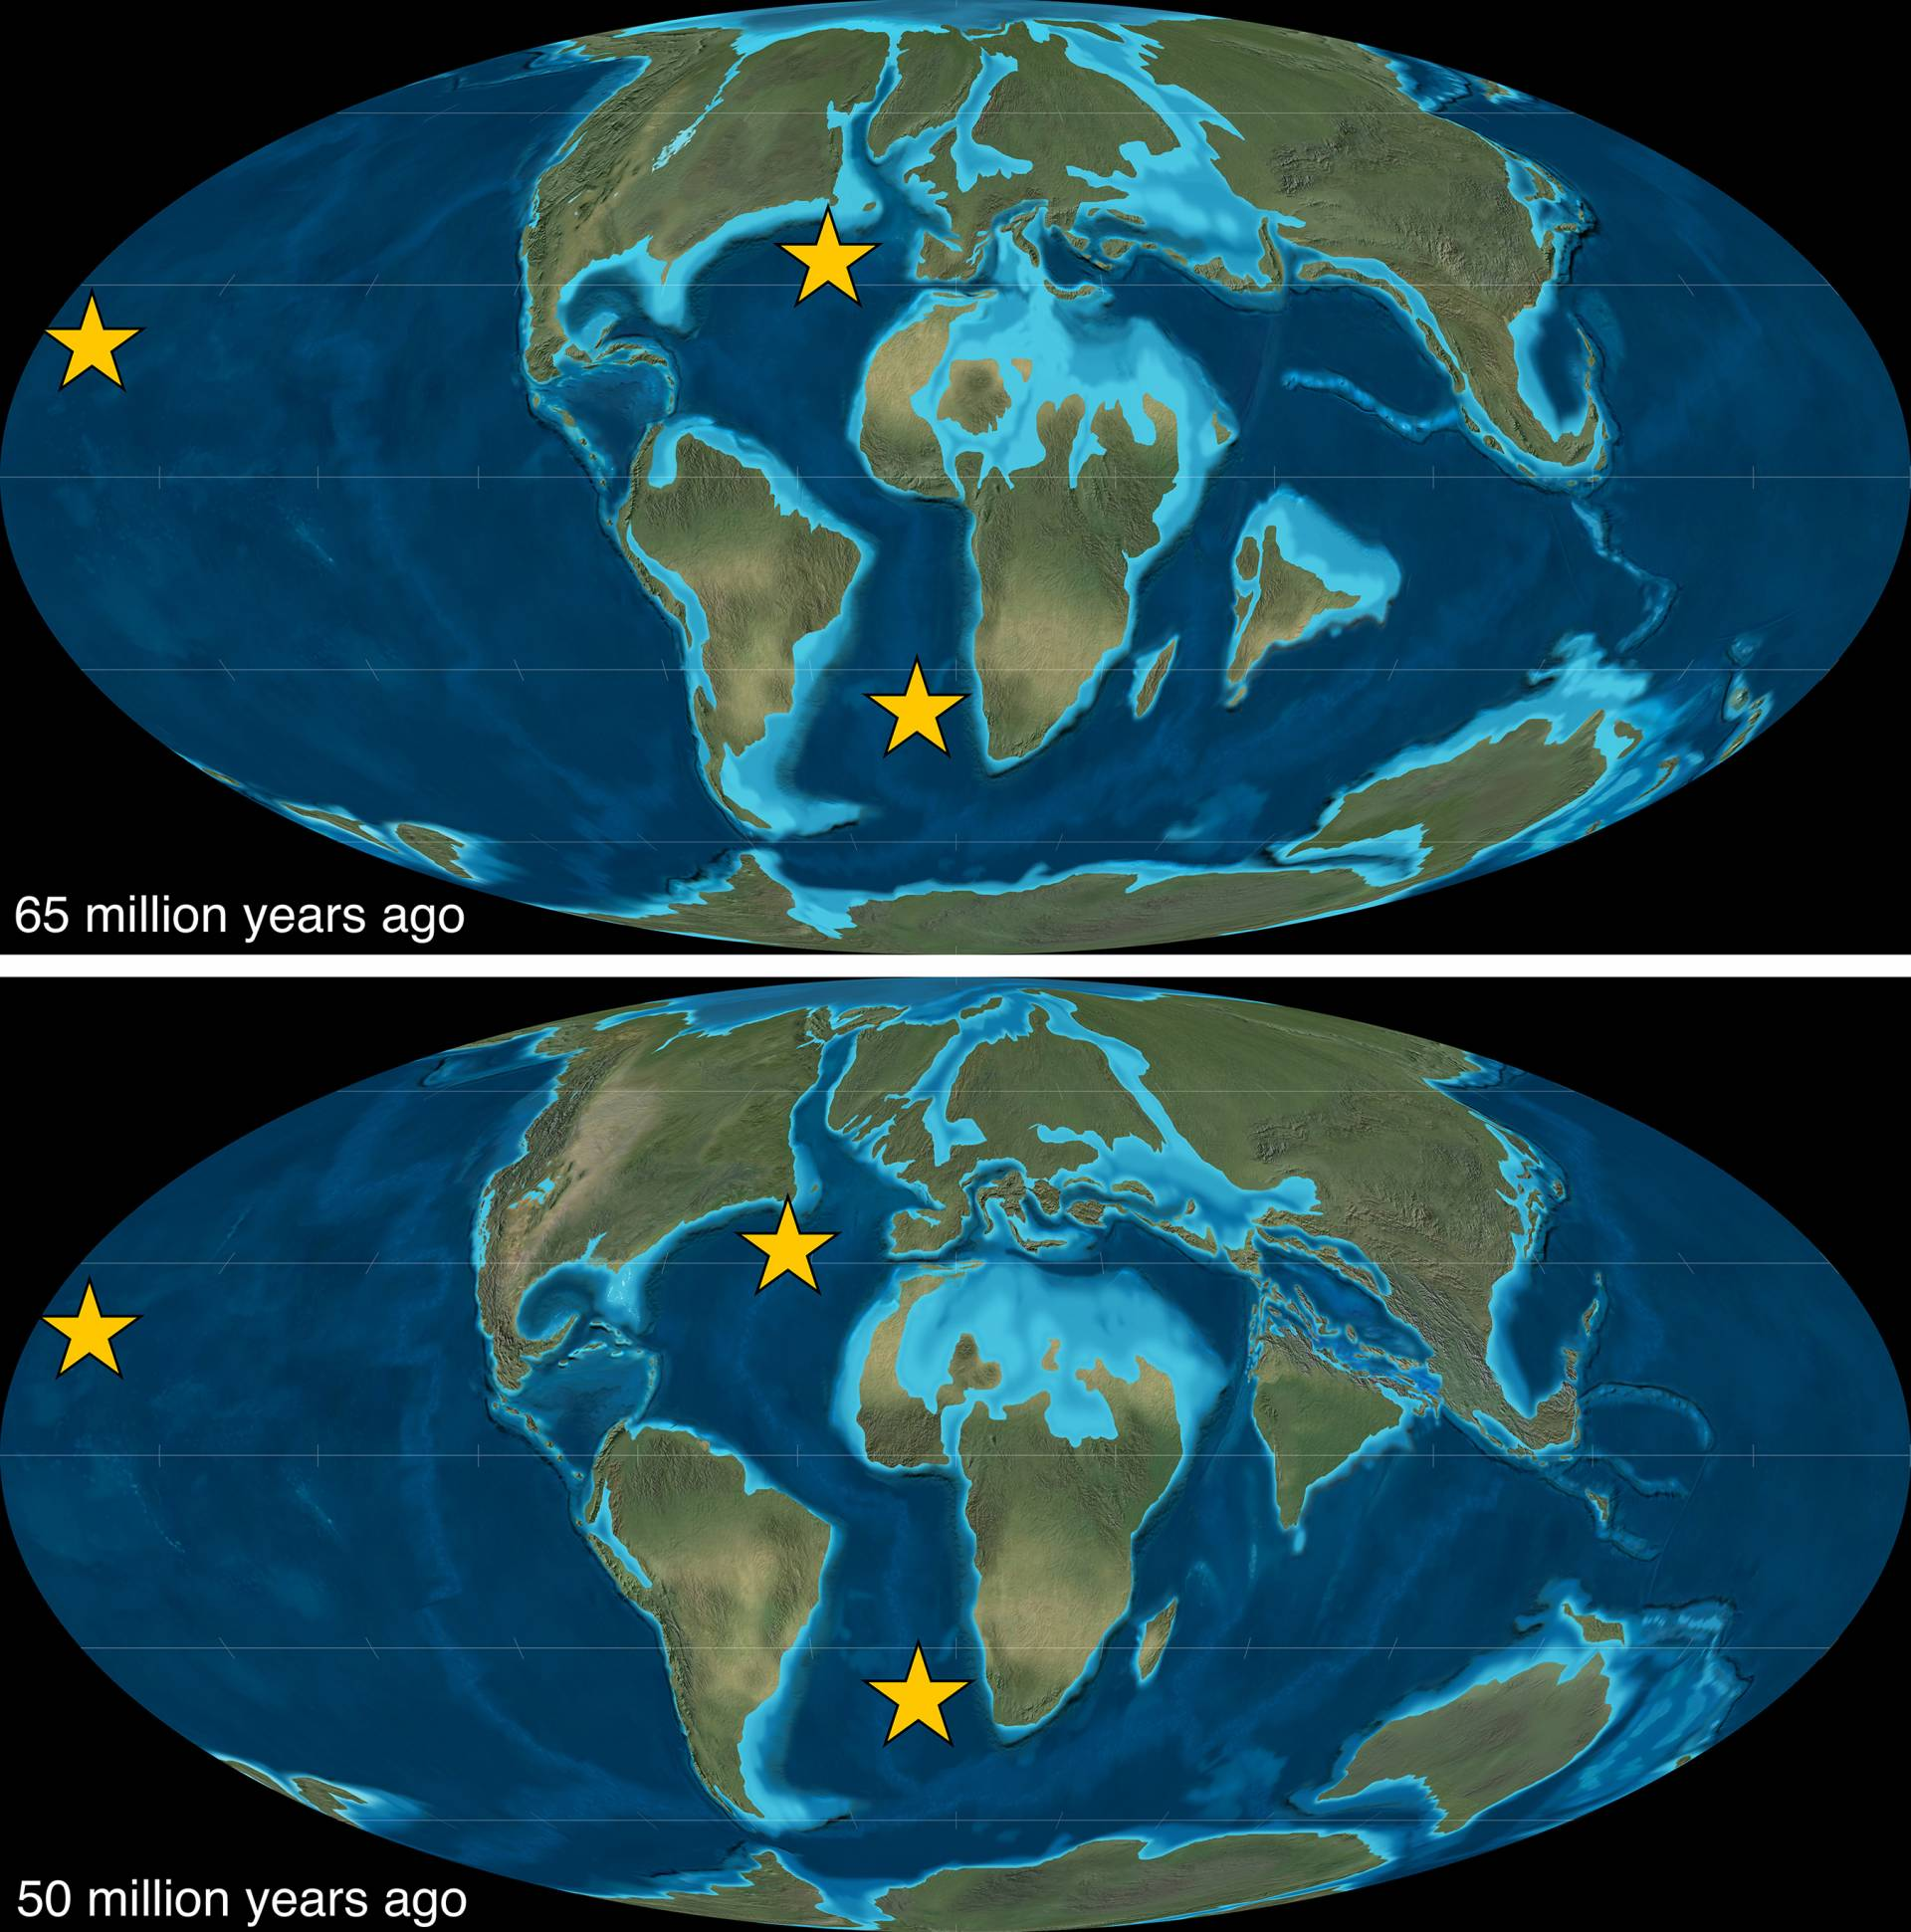 paleomap comparison 65 million years ago vs 50 million years ago